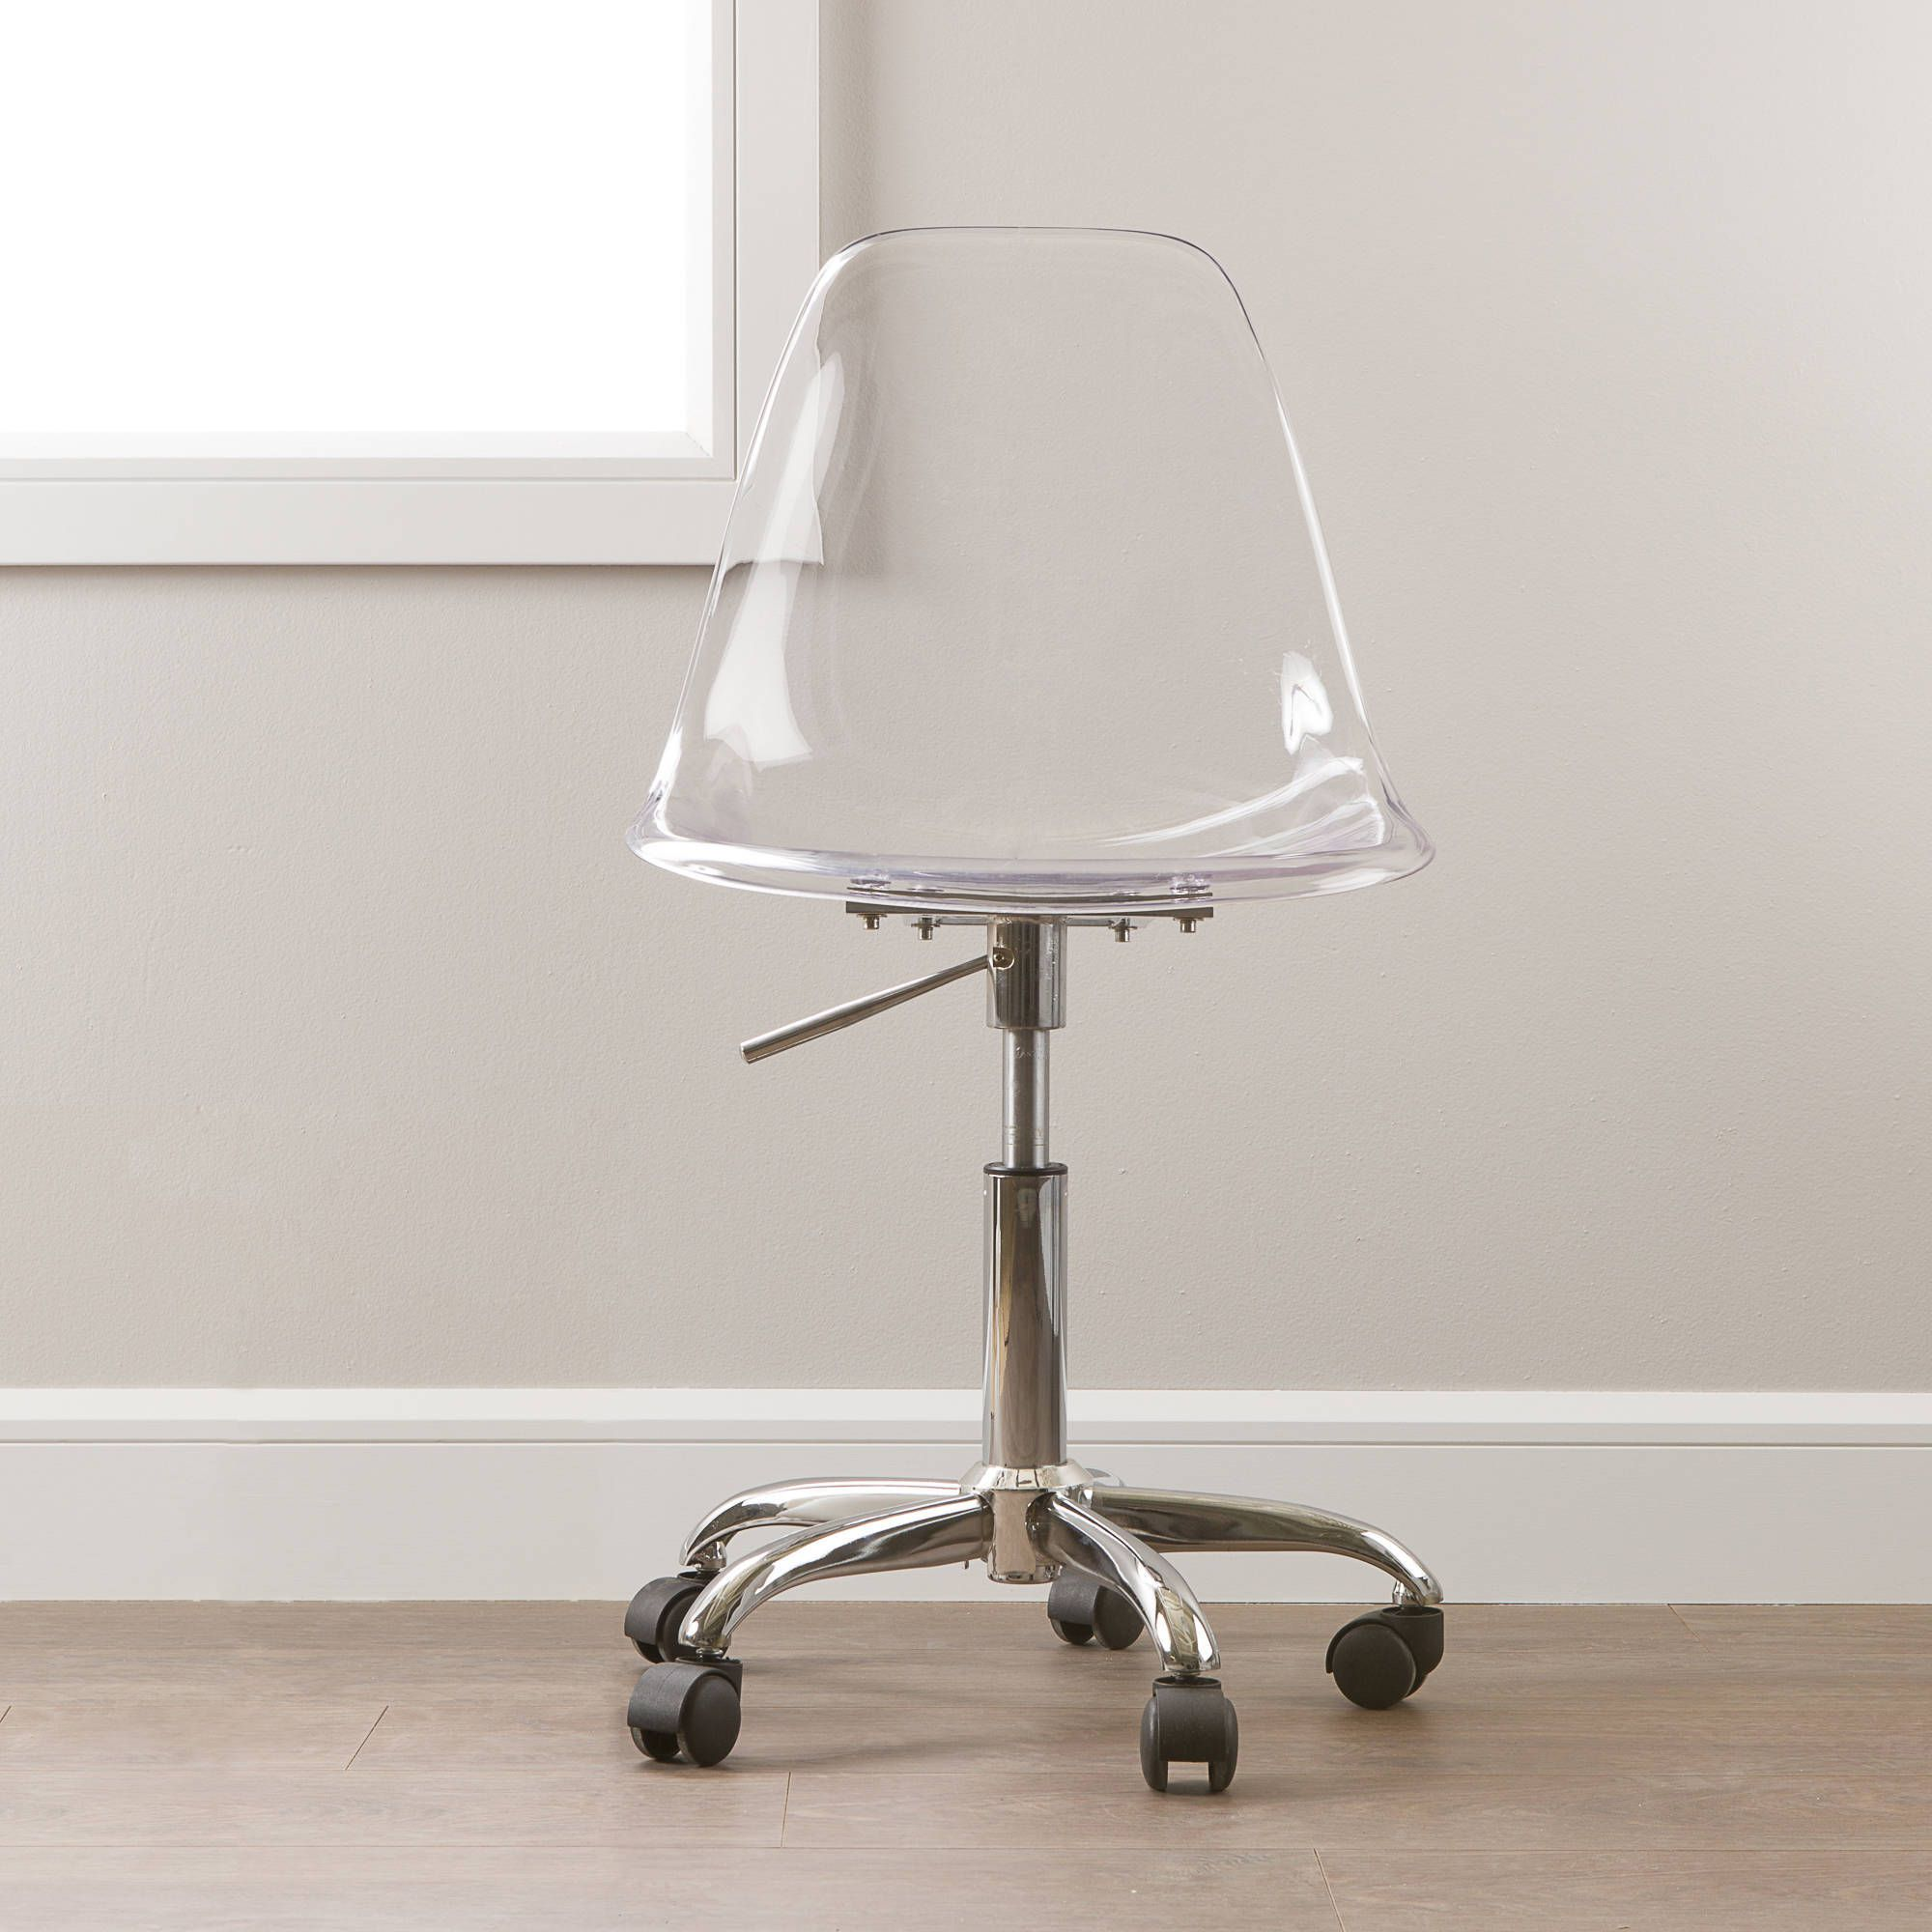 South Shore Annexe Clear Office Chair With Wheels Multiple Colors Walmart Com In 2020 Clear Office Chair Acrylic Chair Clear Desk Chair